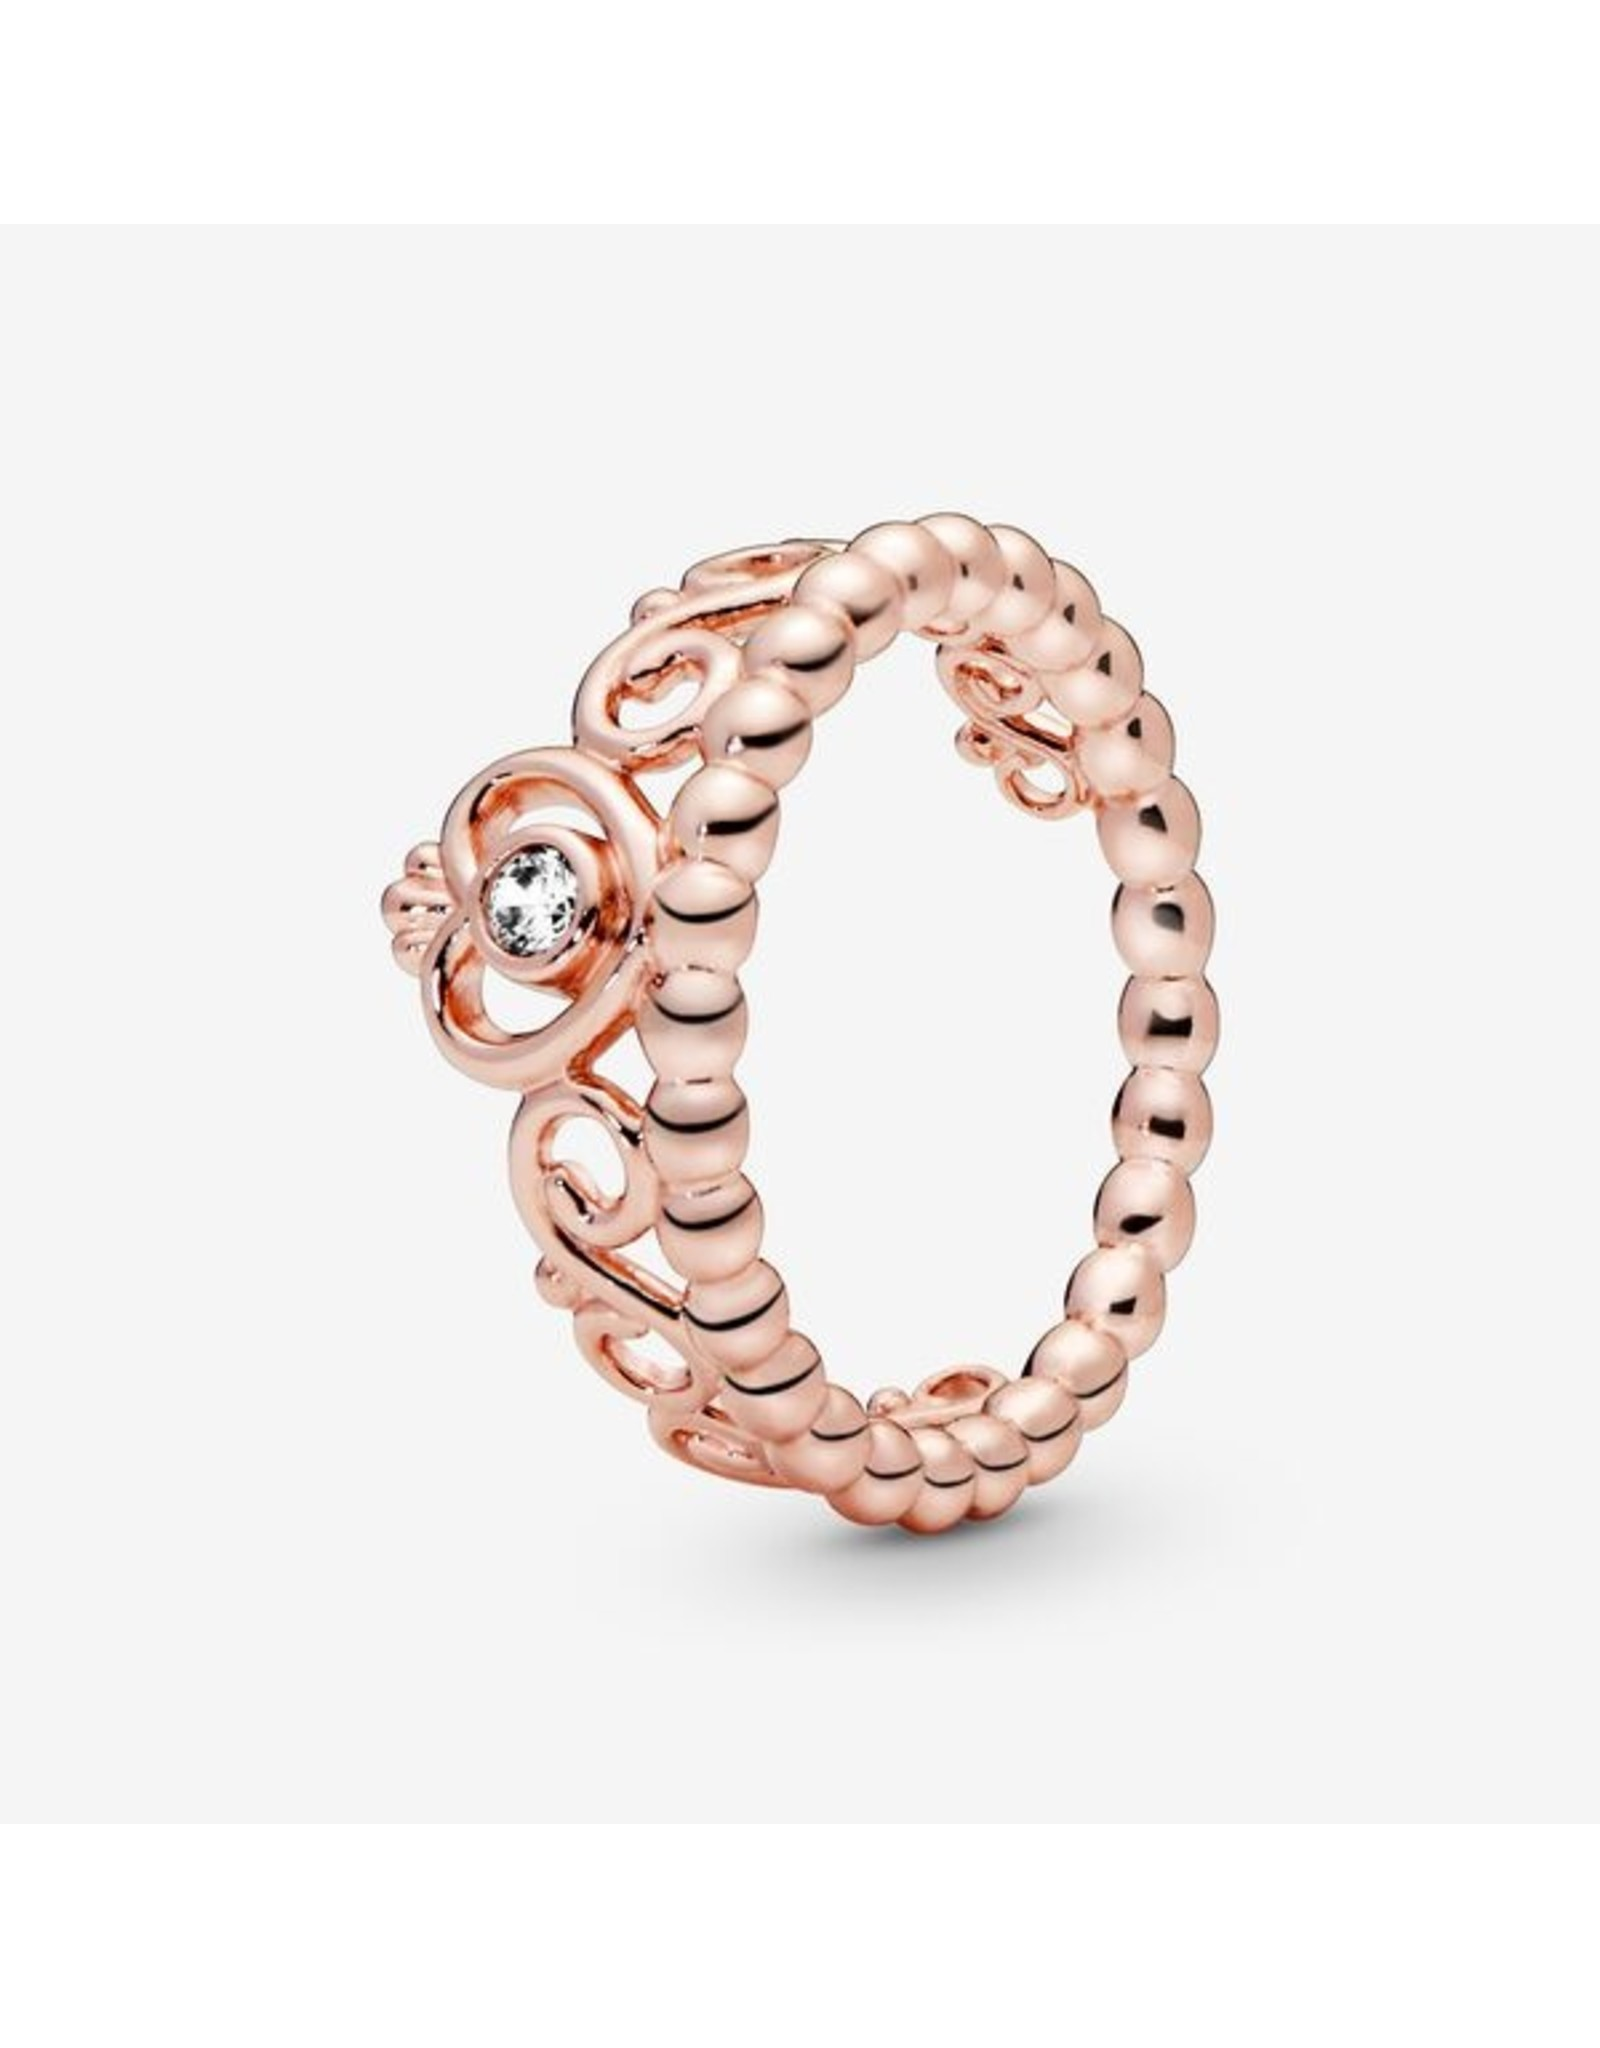 Pandora Pandora Ring,( 180880CZ) Rose Gold, My Princess Tiara, Clear CZ